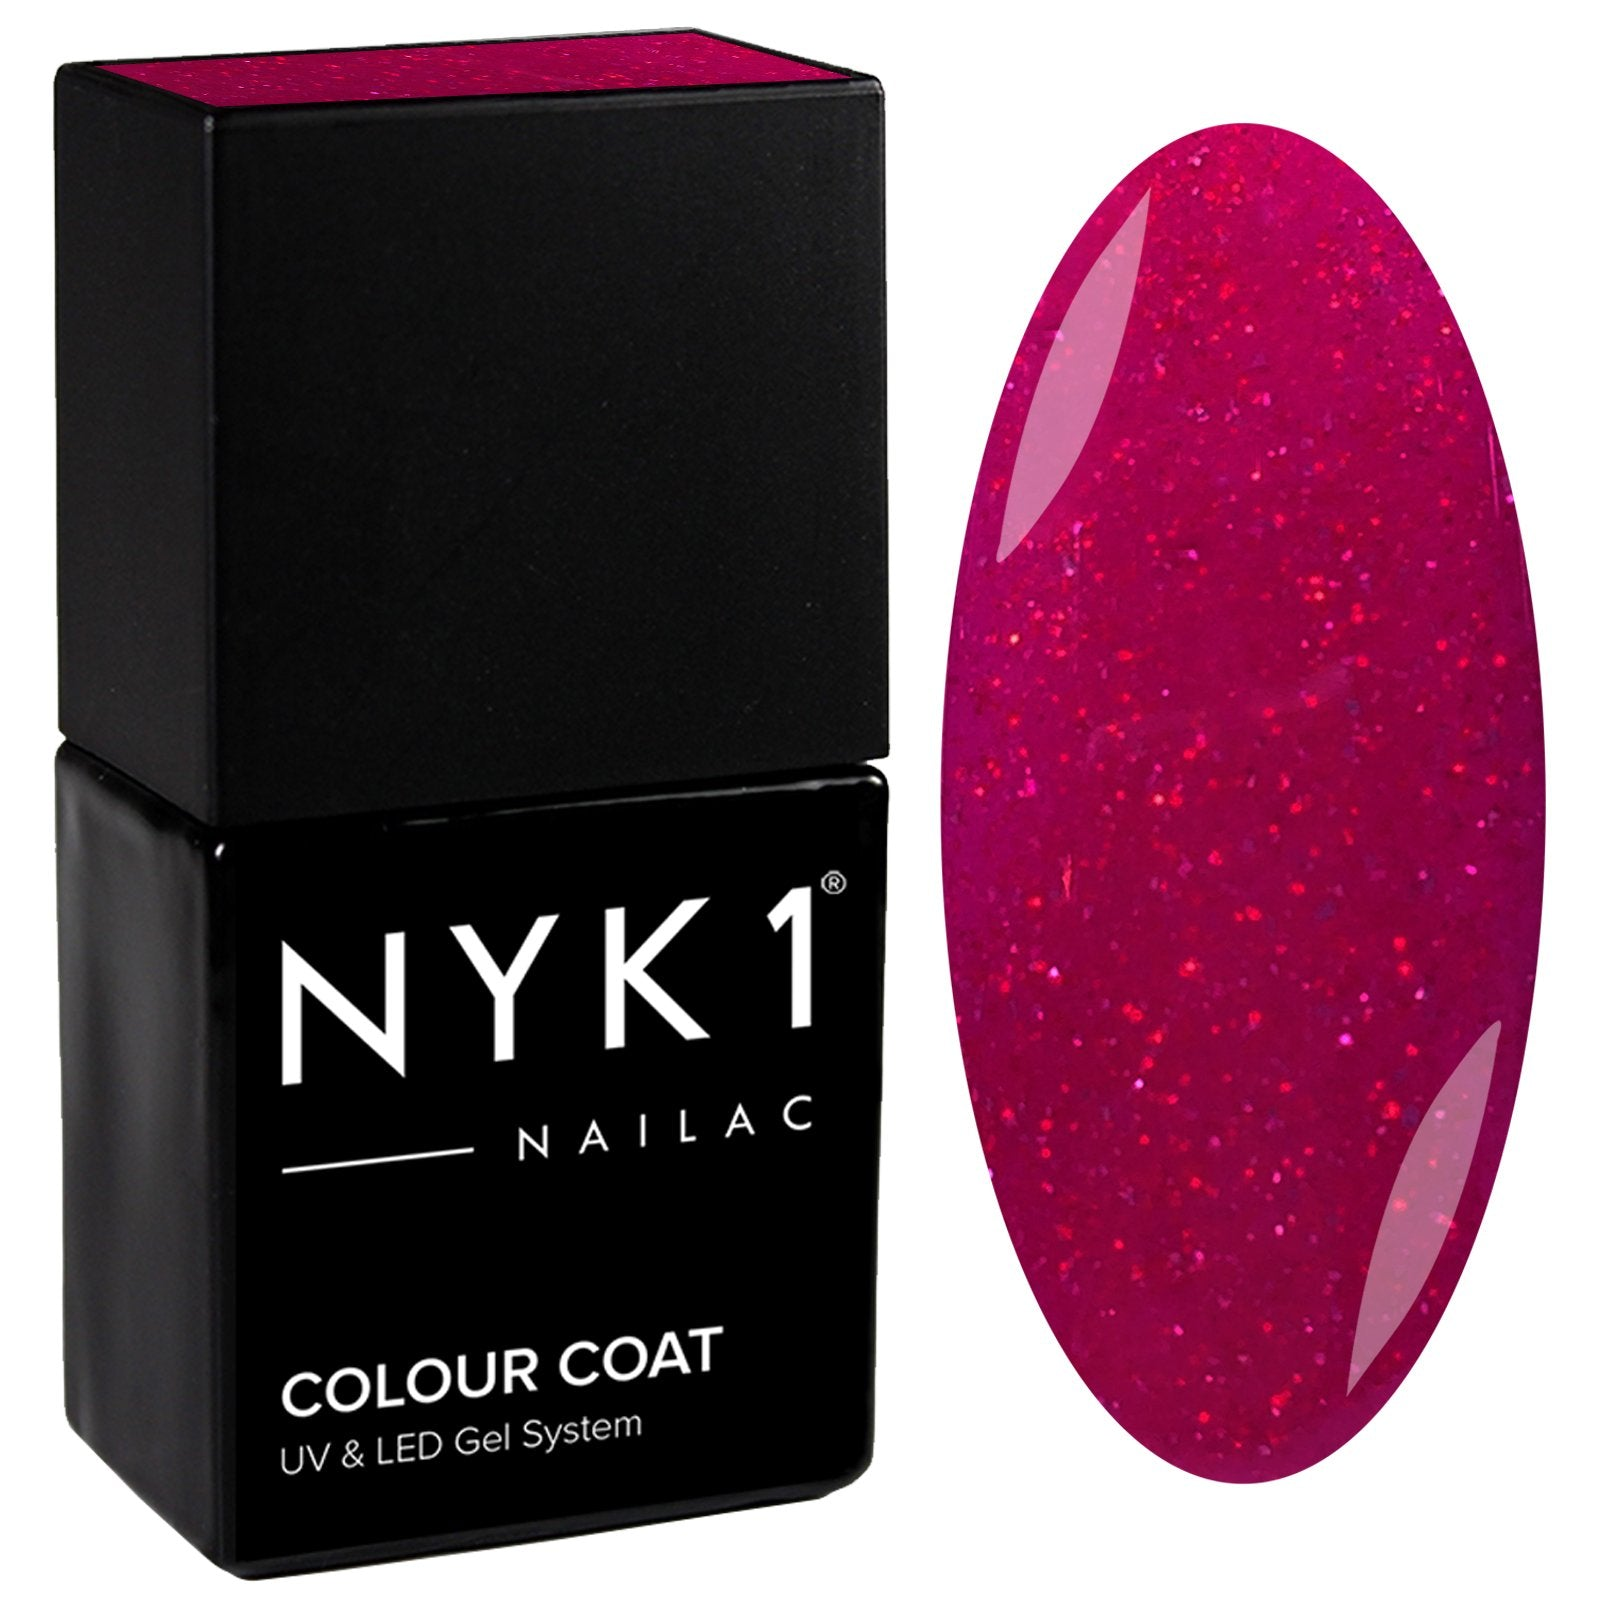 NYK1 Nailac Red Sparkle Glitter Gel Nail Polish